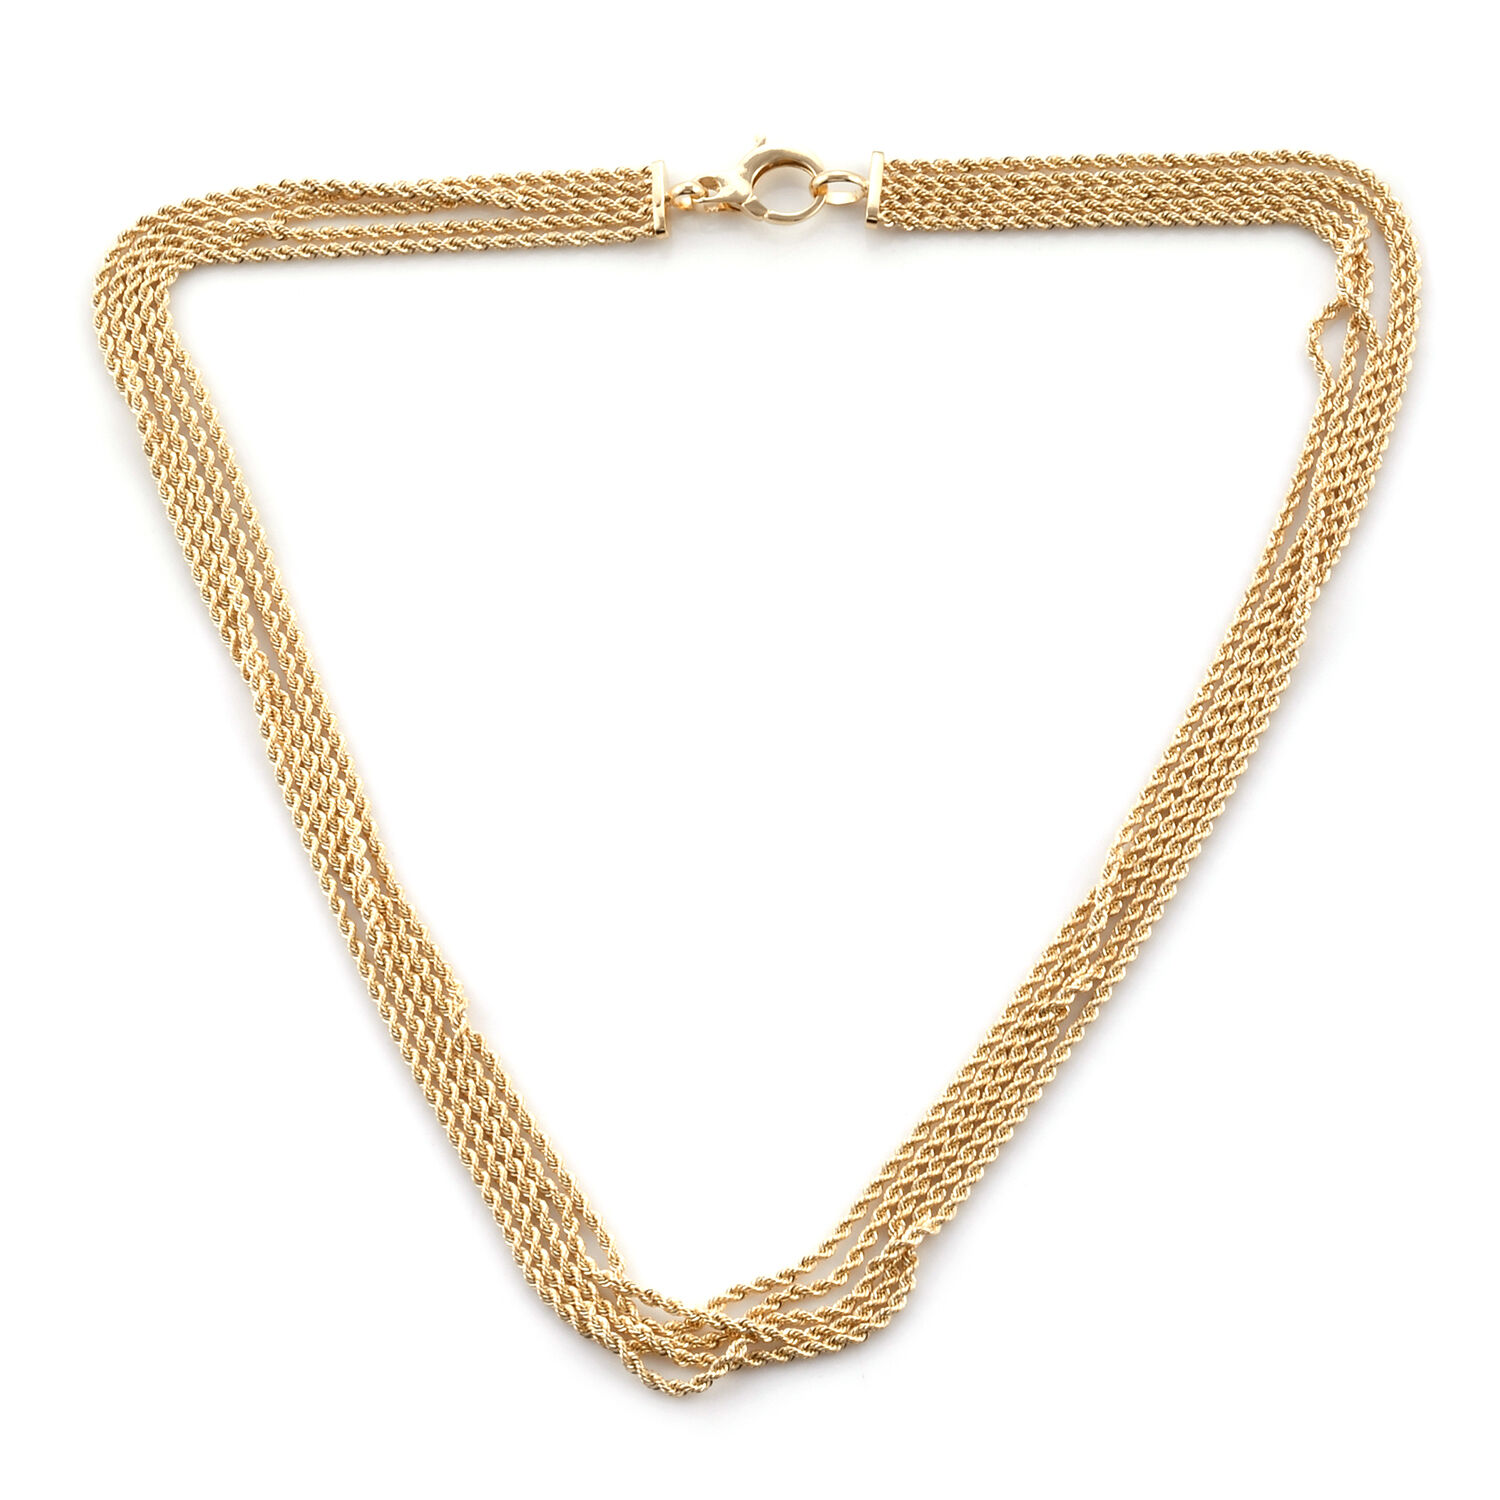 Limited Edition Royal Bali Collection 9K Yellow Gold Rope